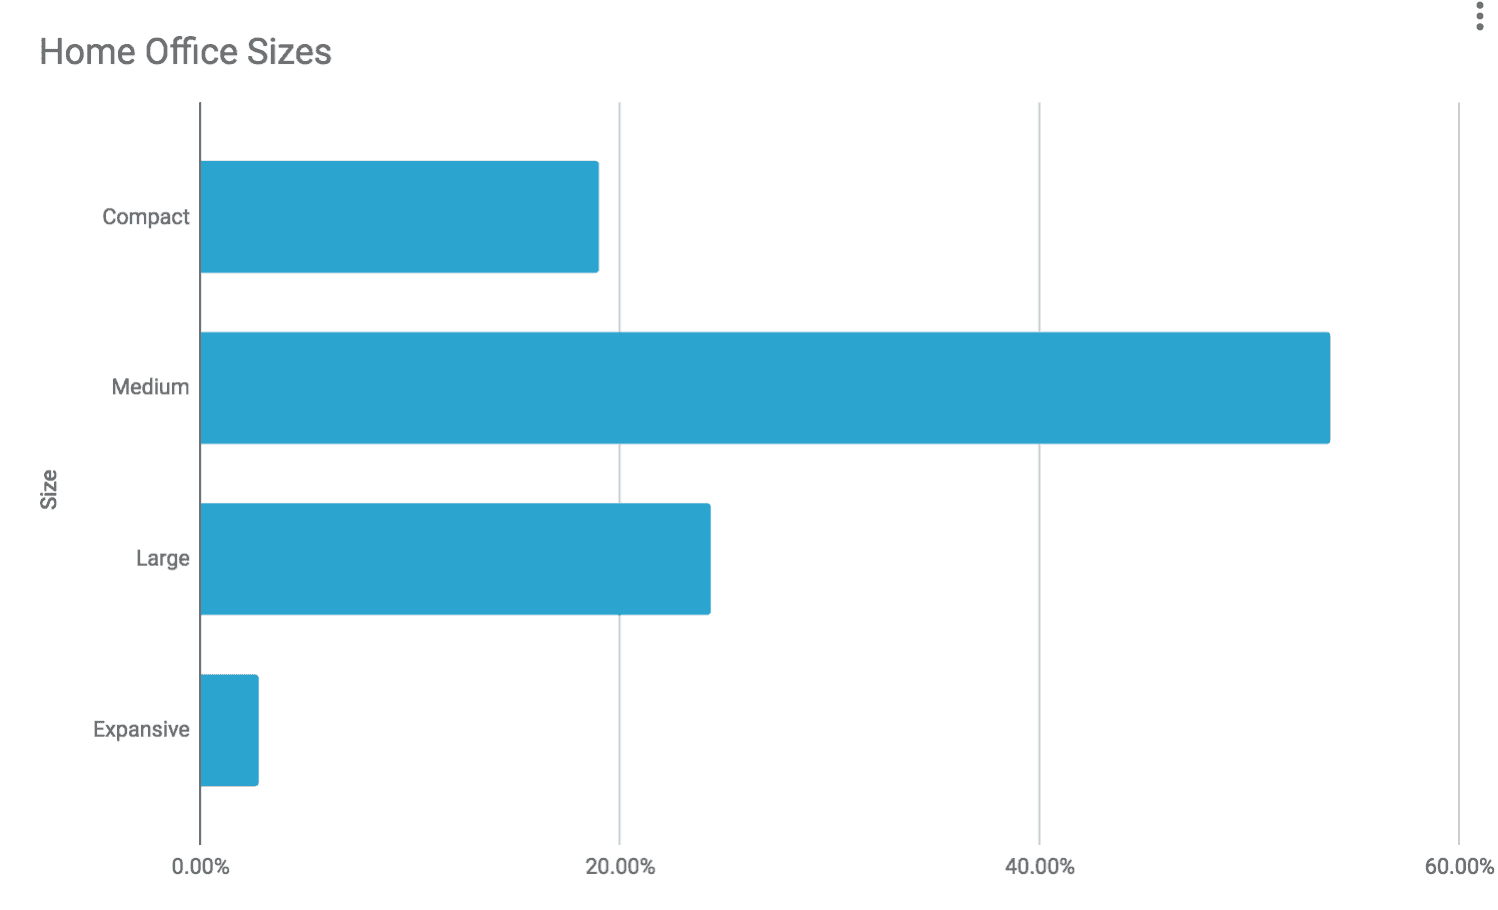 Chart showing small home office percentages